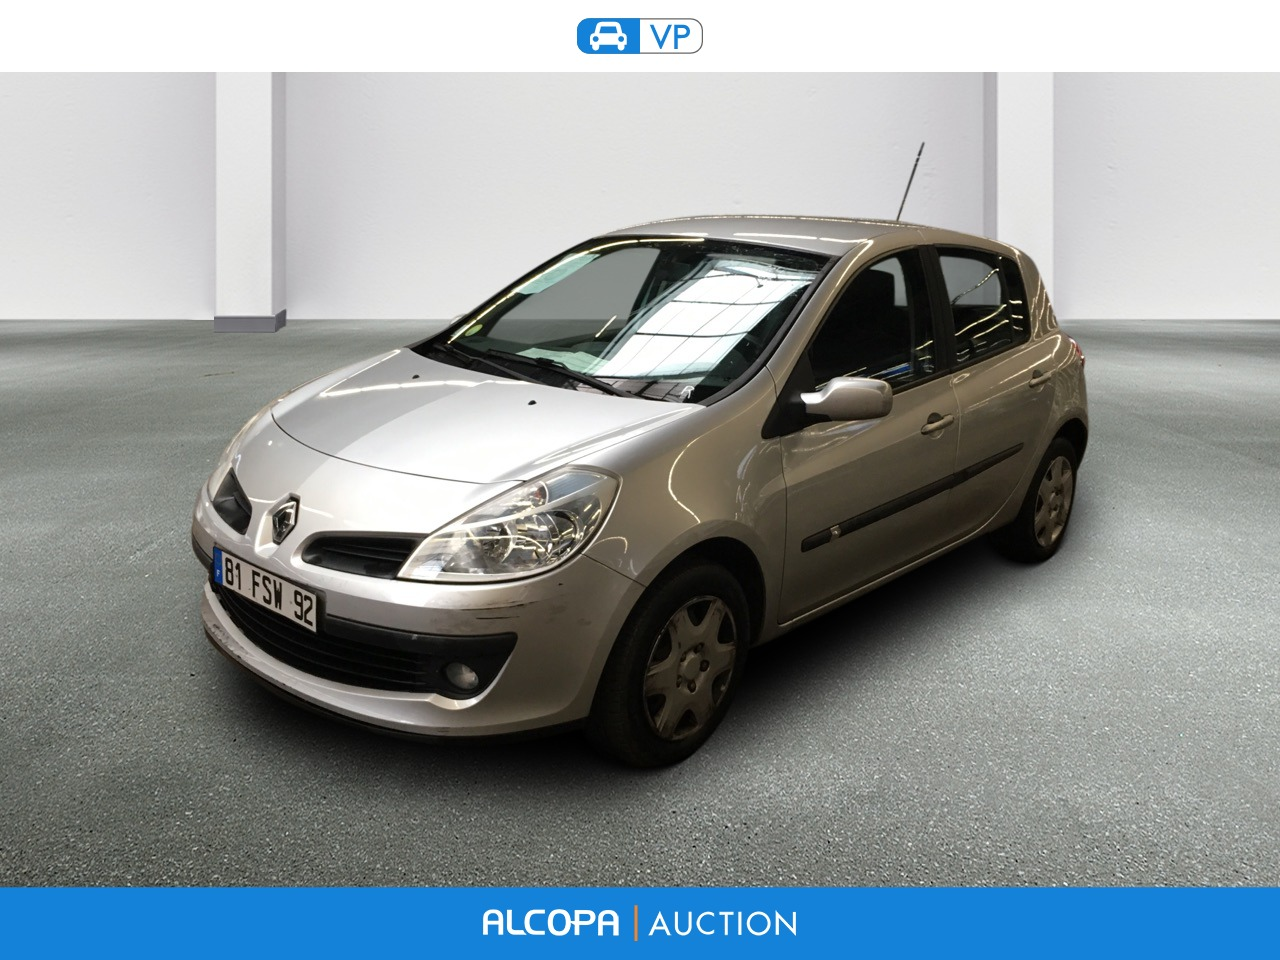 renault clio iii clio tce 100 eco2 dynamique alcopa auction. Black Bedroom Furniture Sets. Home Design Ideas